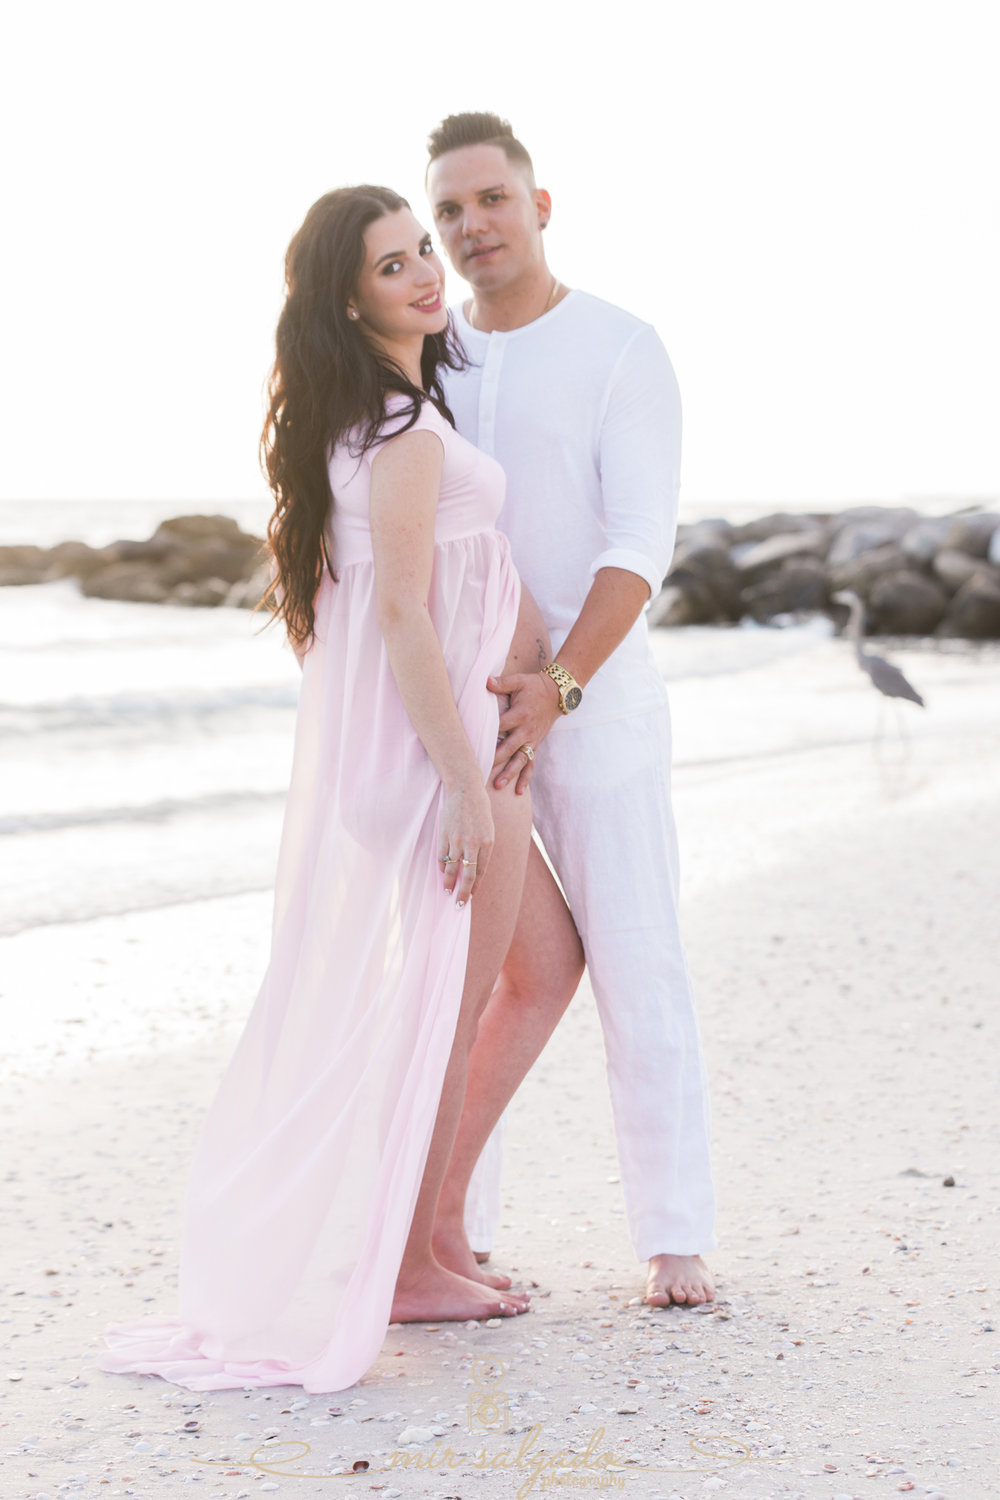 St.Pete-beach-maternity-photo, Florida-beach-maternity-session, Tampa-maternity-photorapher